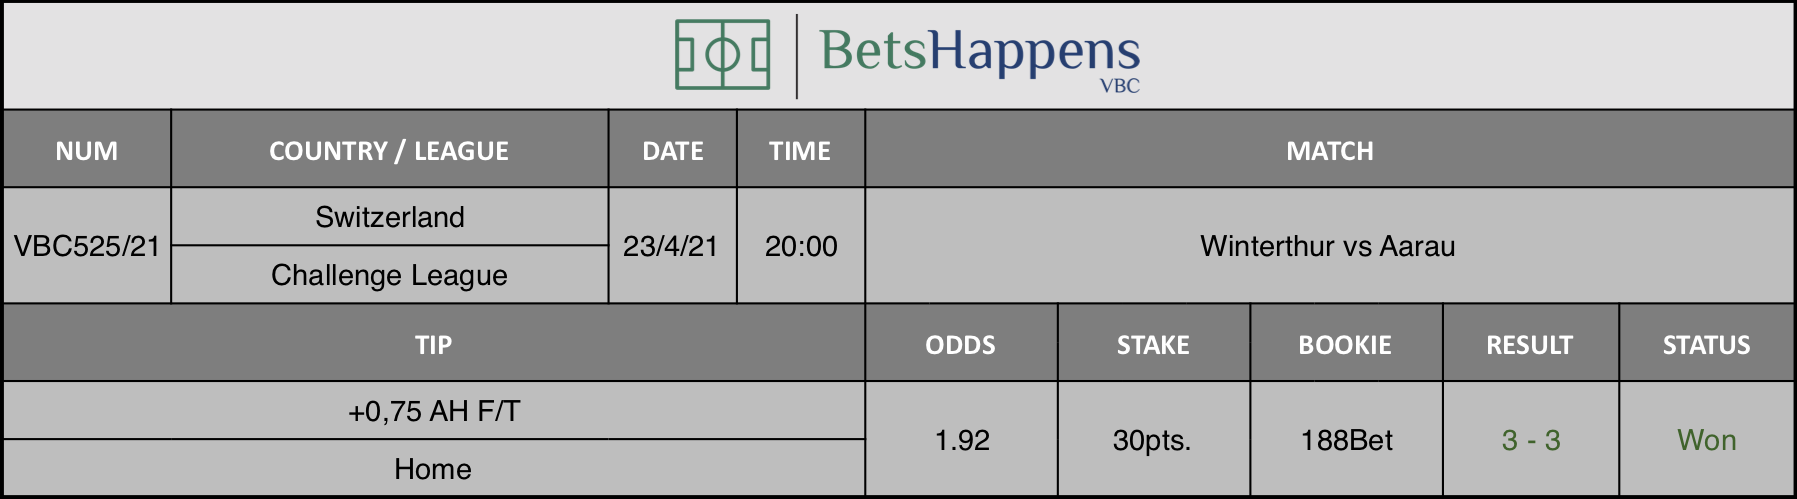 Results of our tip for the Winterthur vs Aarau match where +0,75 AH F/T Home is recommended.